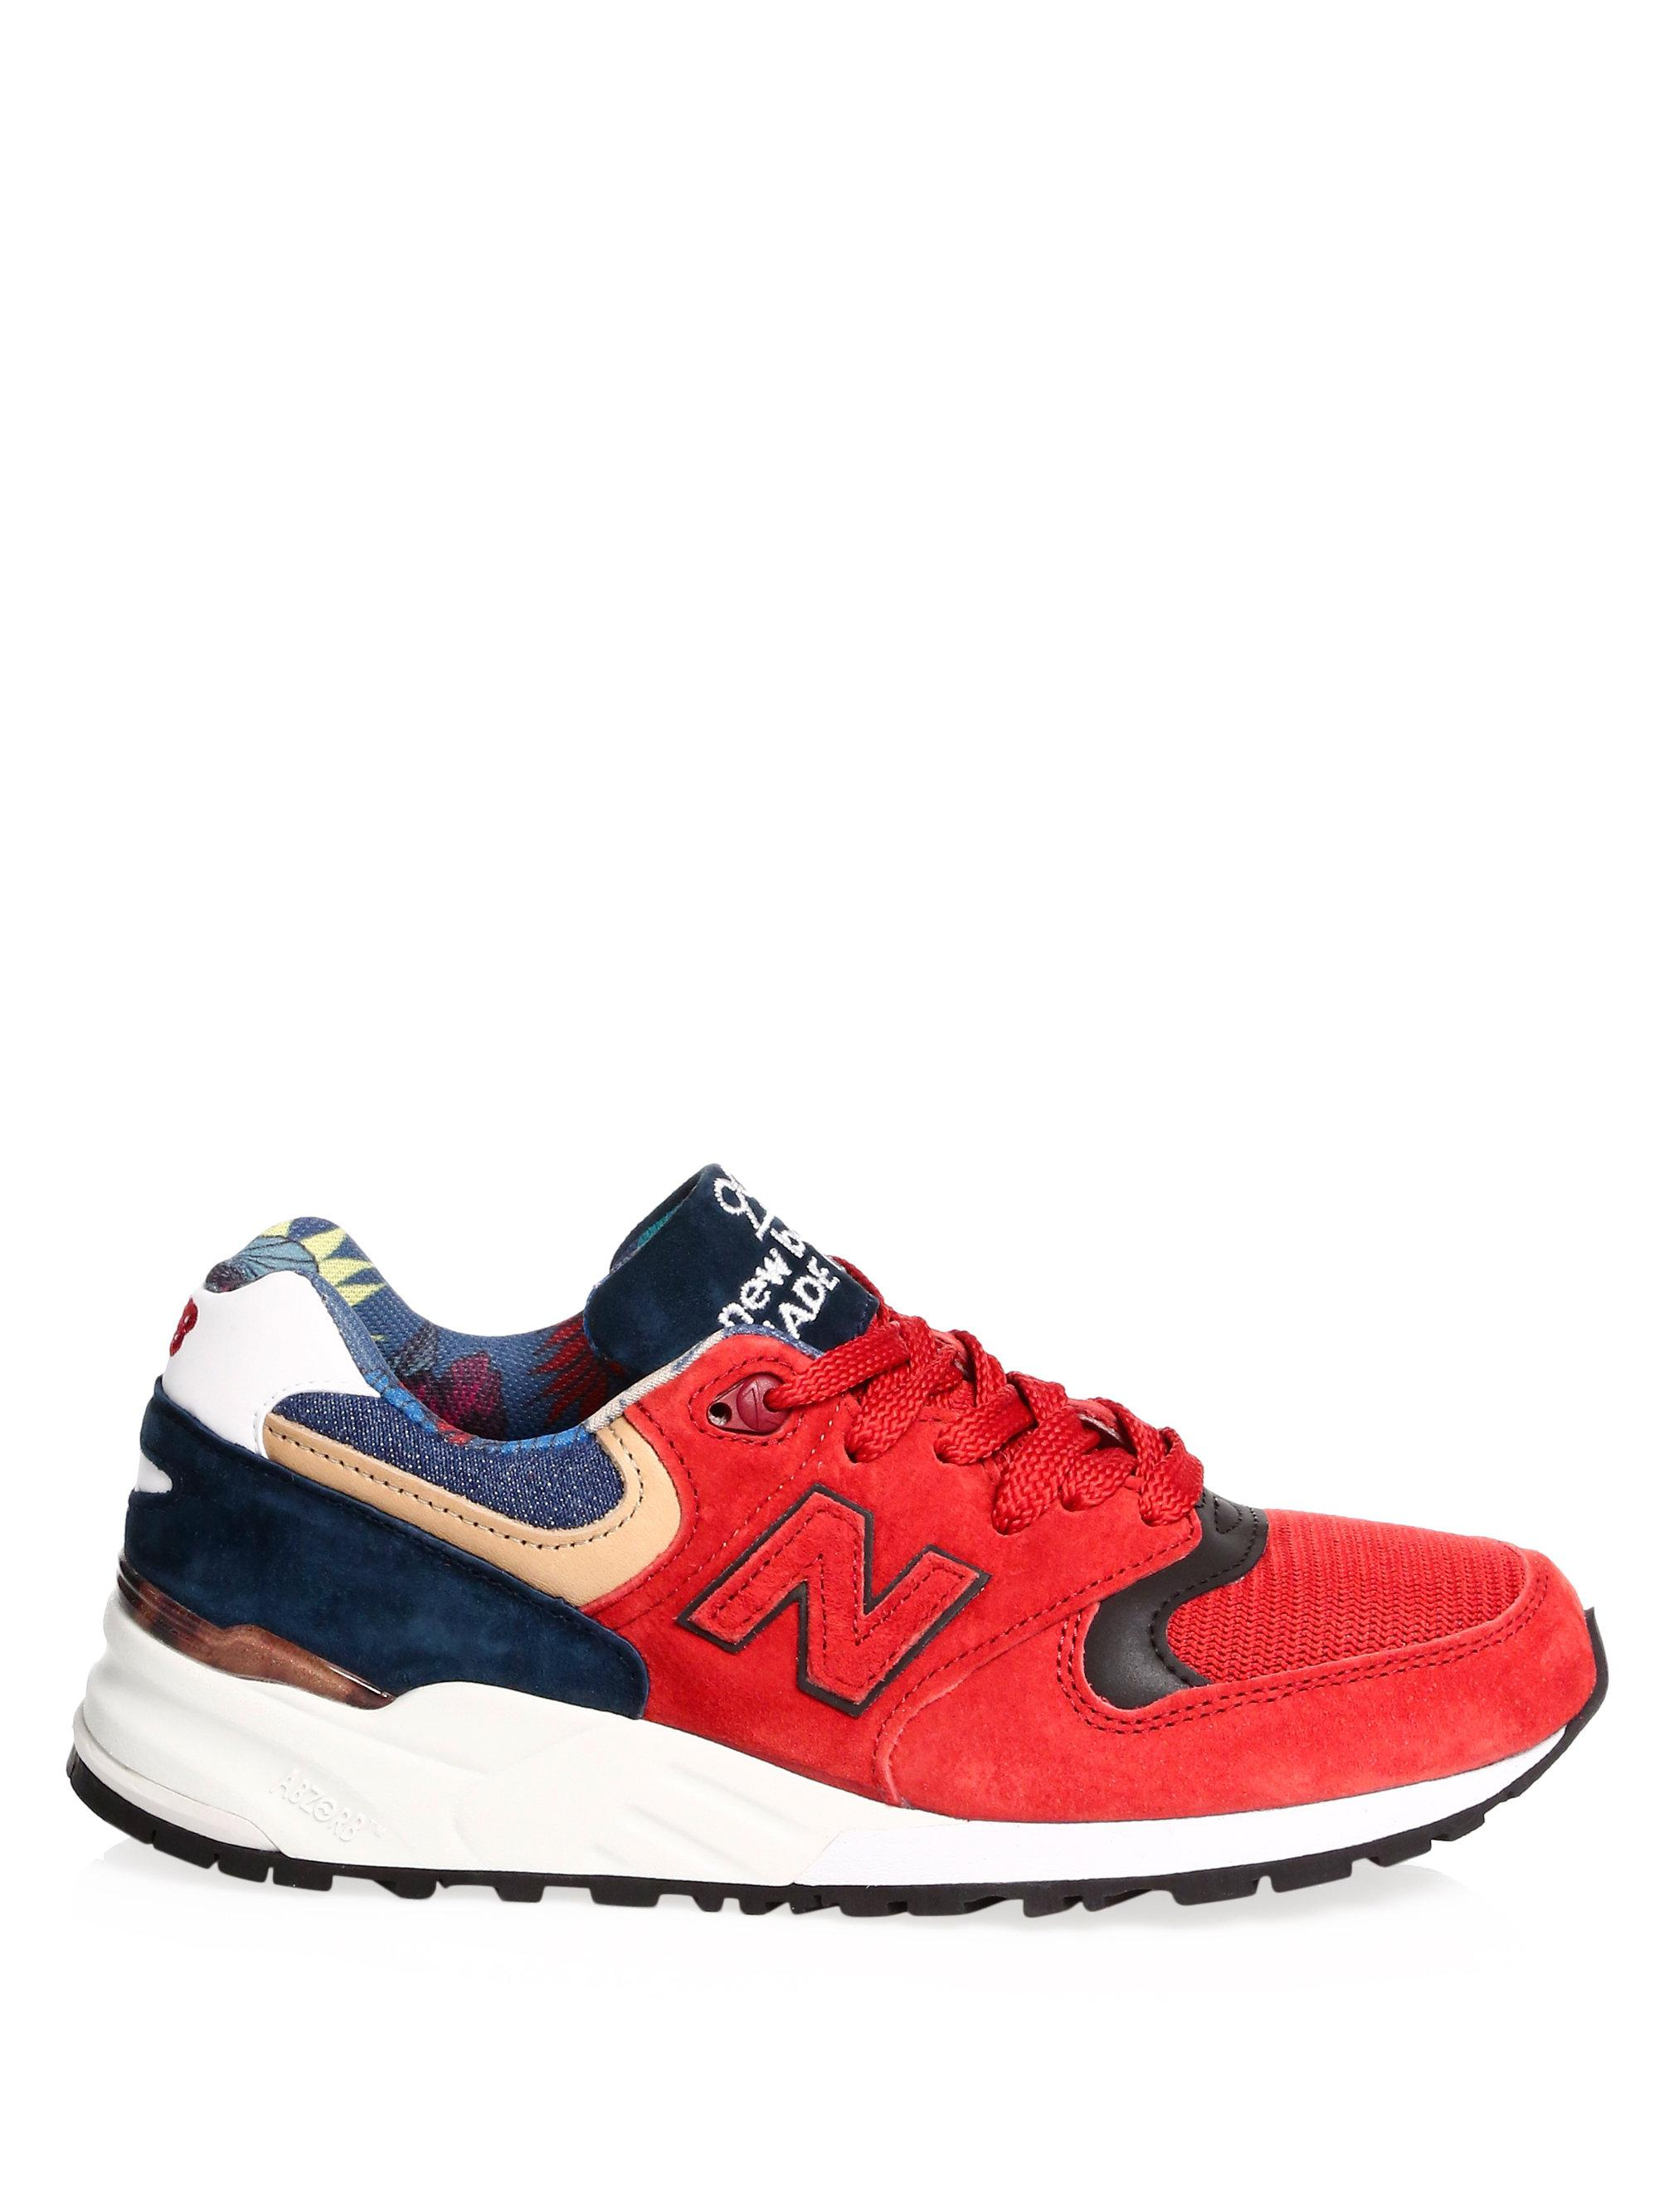 New Balance Asia Suede Sneakers IycwhC